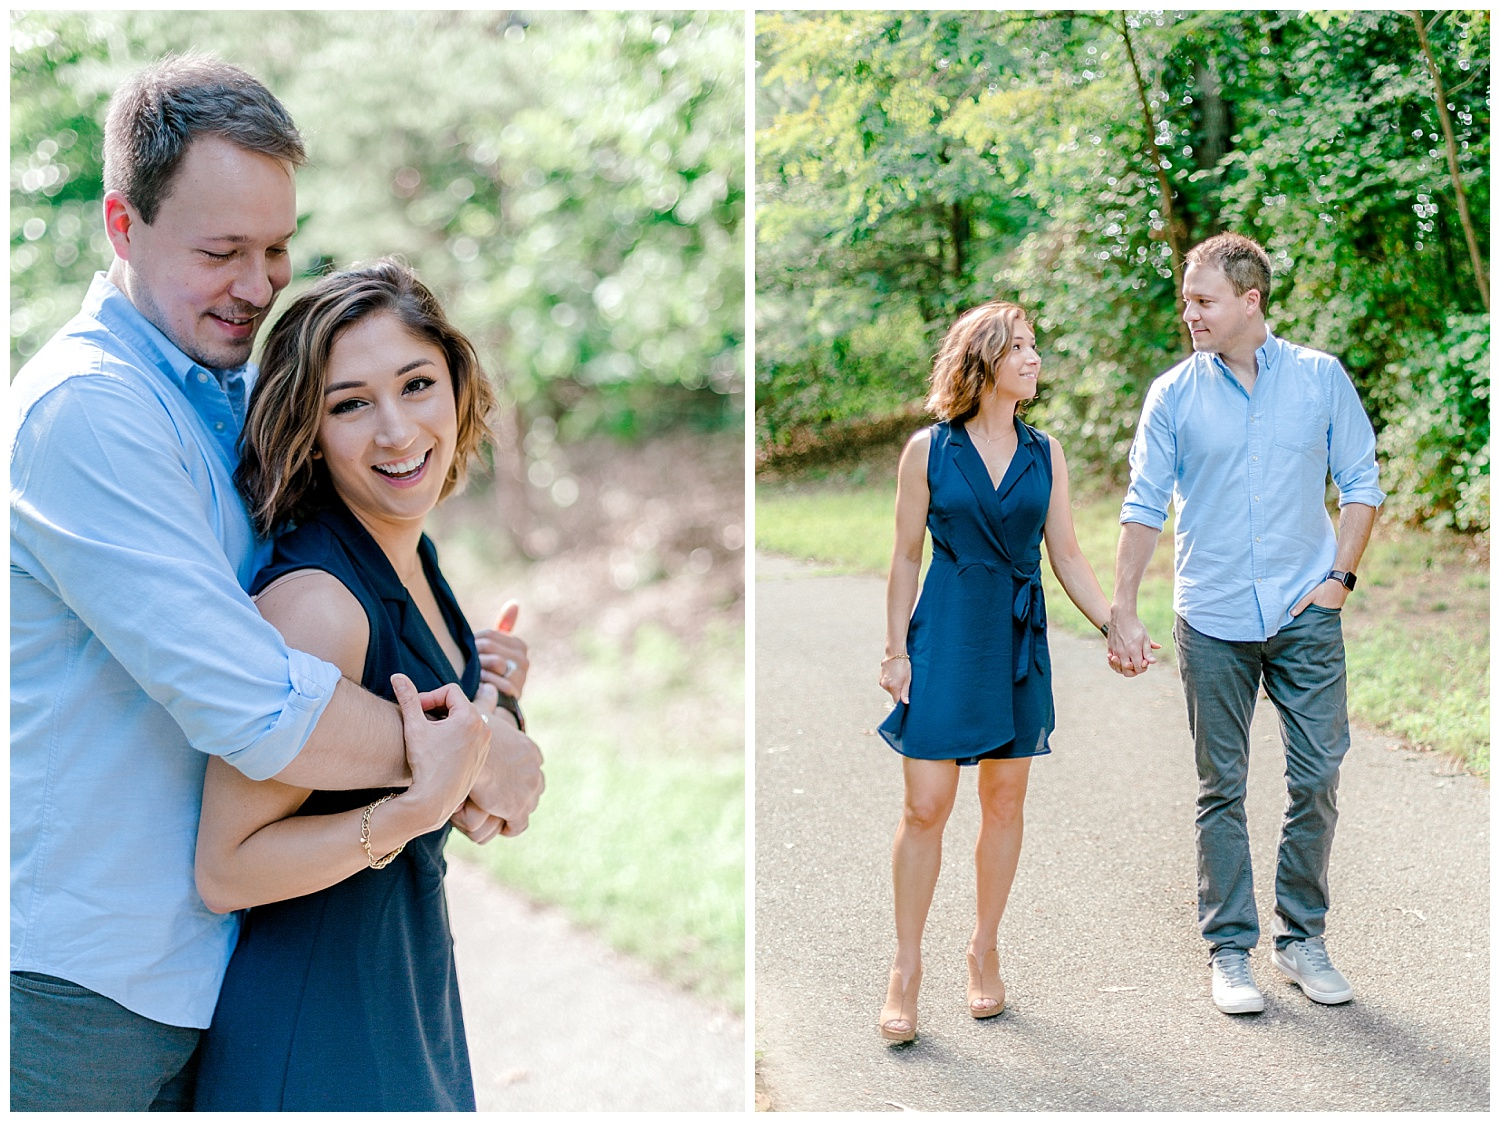 Wooded sunny Summertime engagement session in Odenton Maryland by Pennsylvania based wedding and lifestyle photographer Lytle photography_0004.jpg